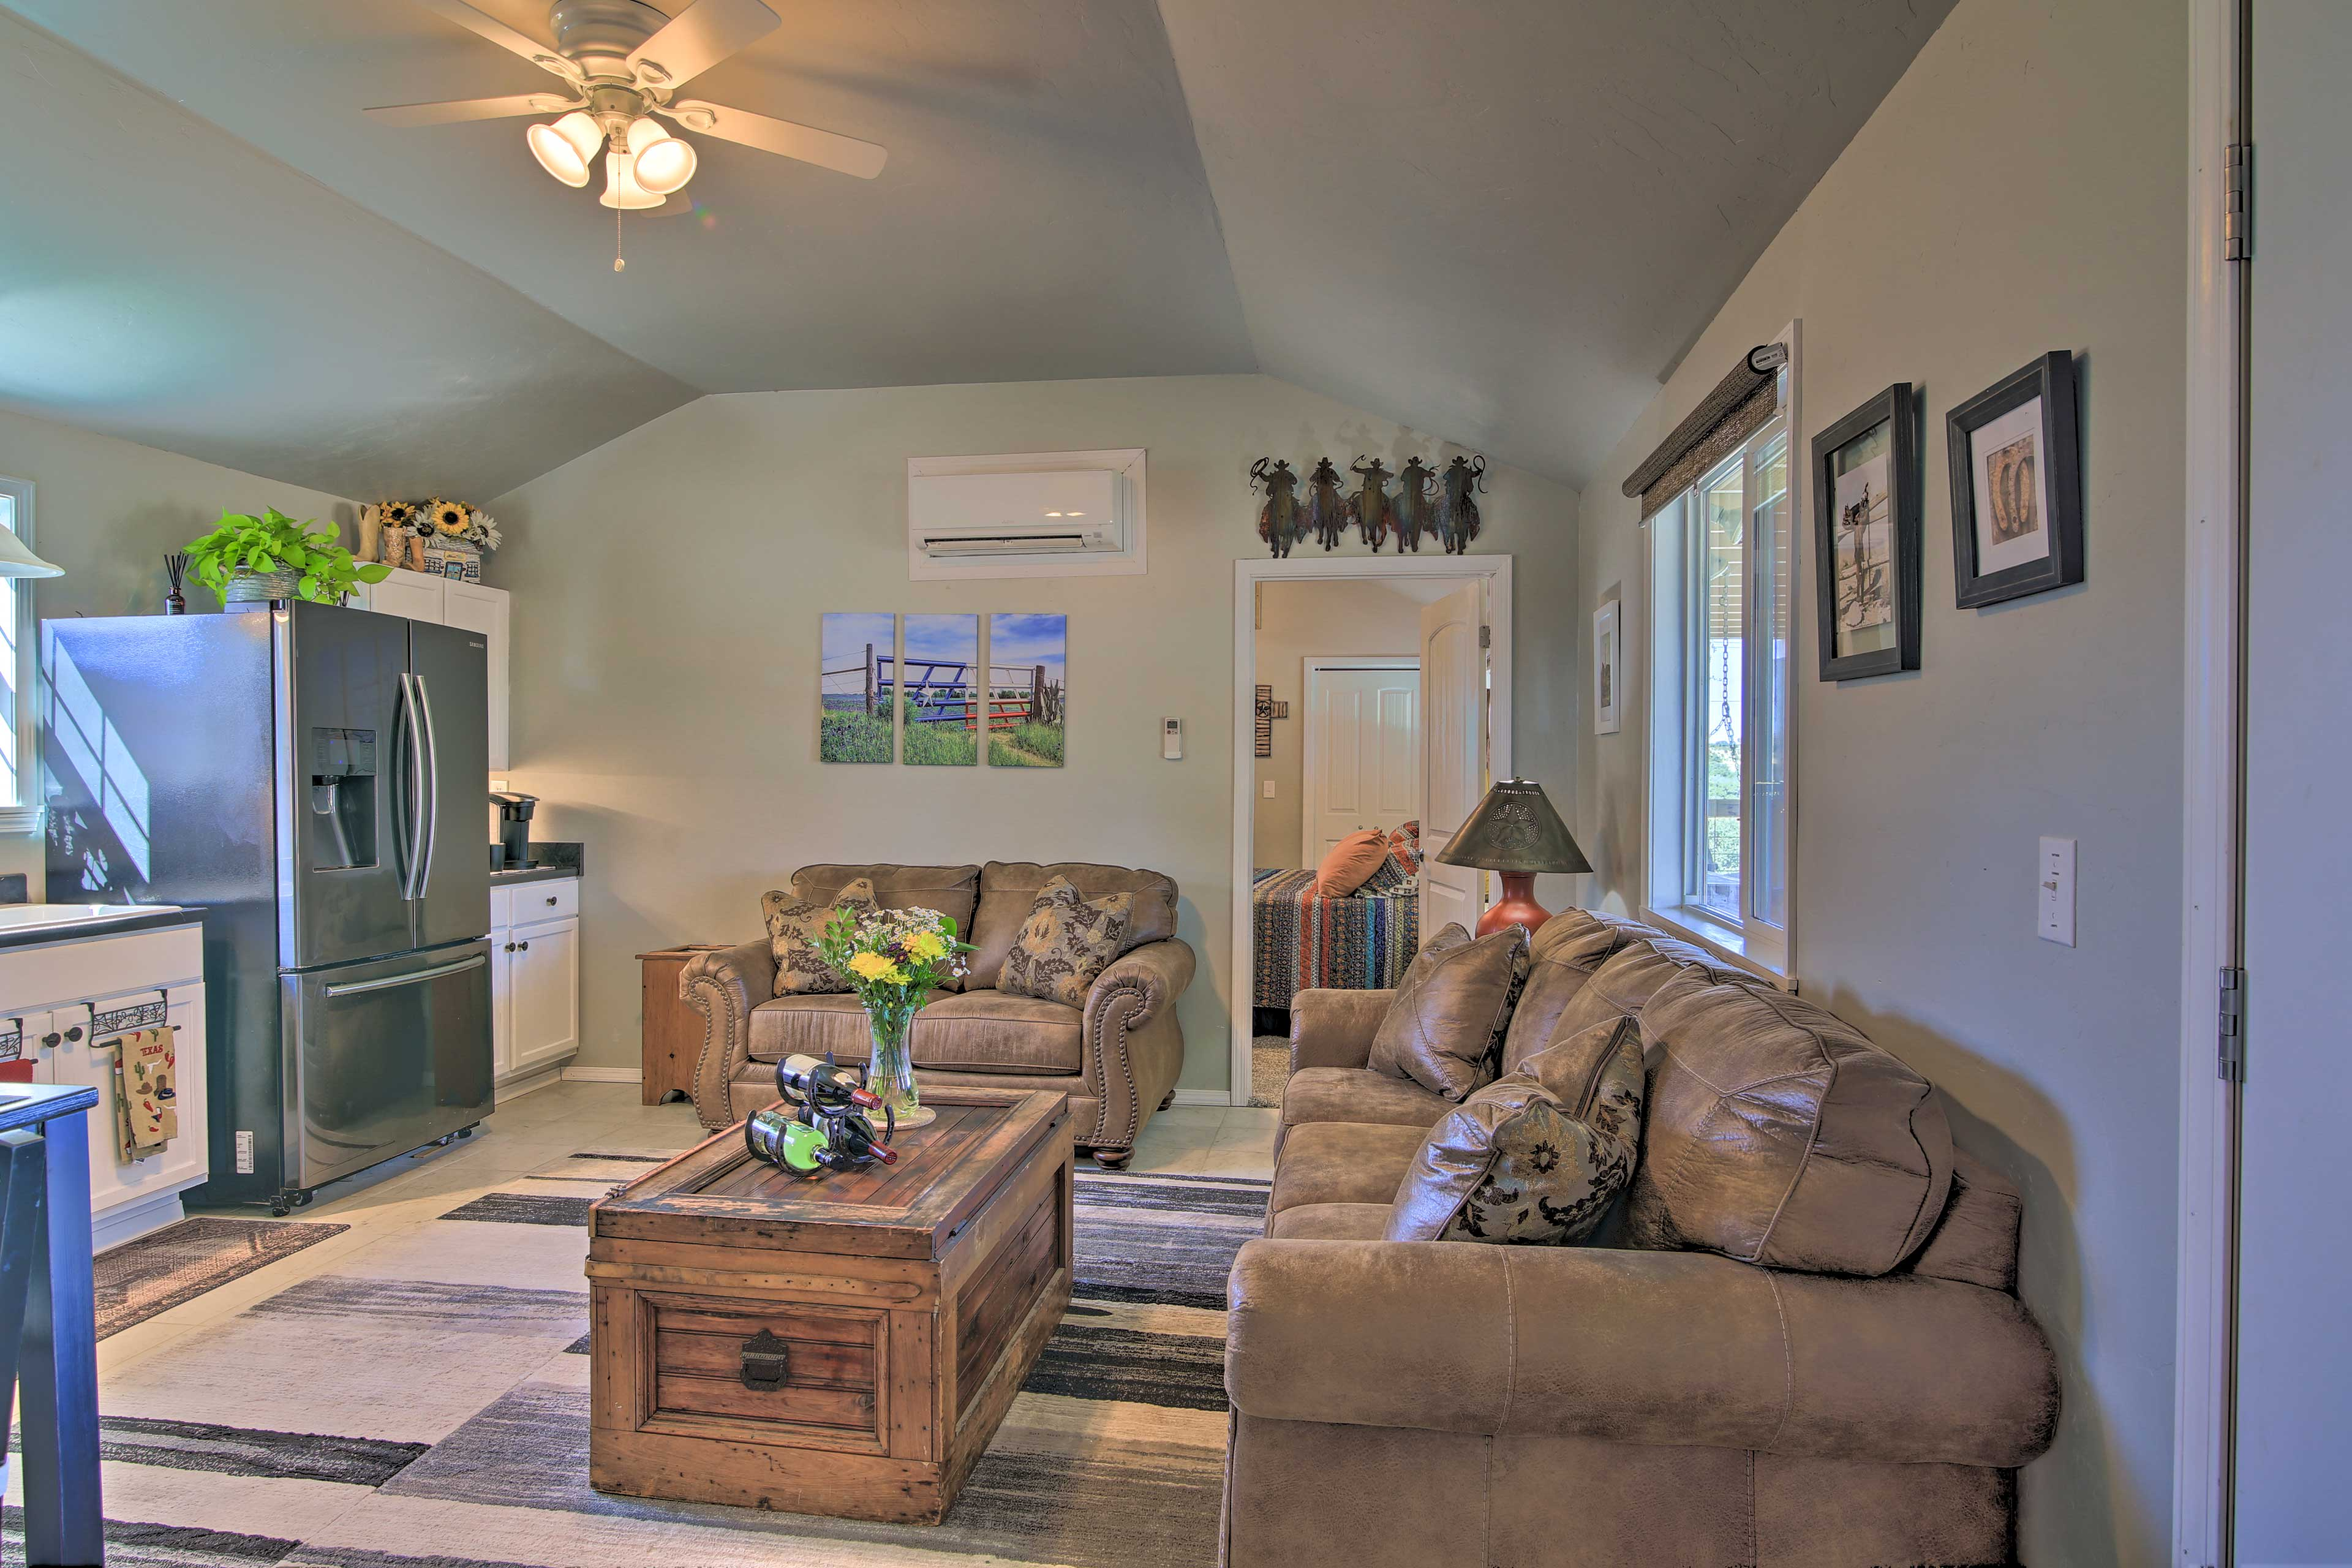 The country-style furniture gives a rustic feeling to the living room.